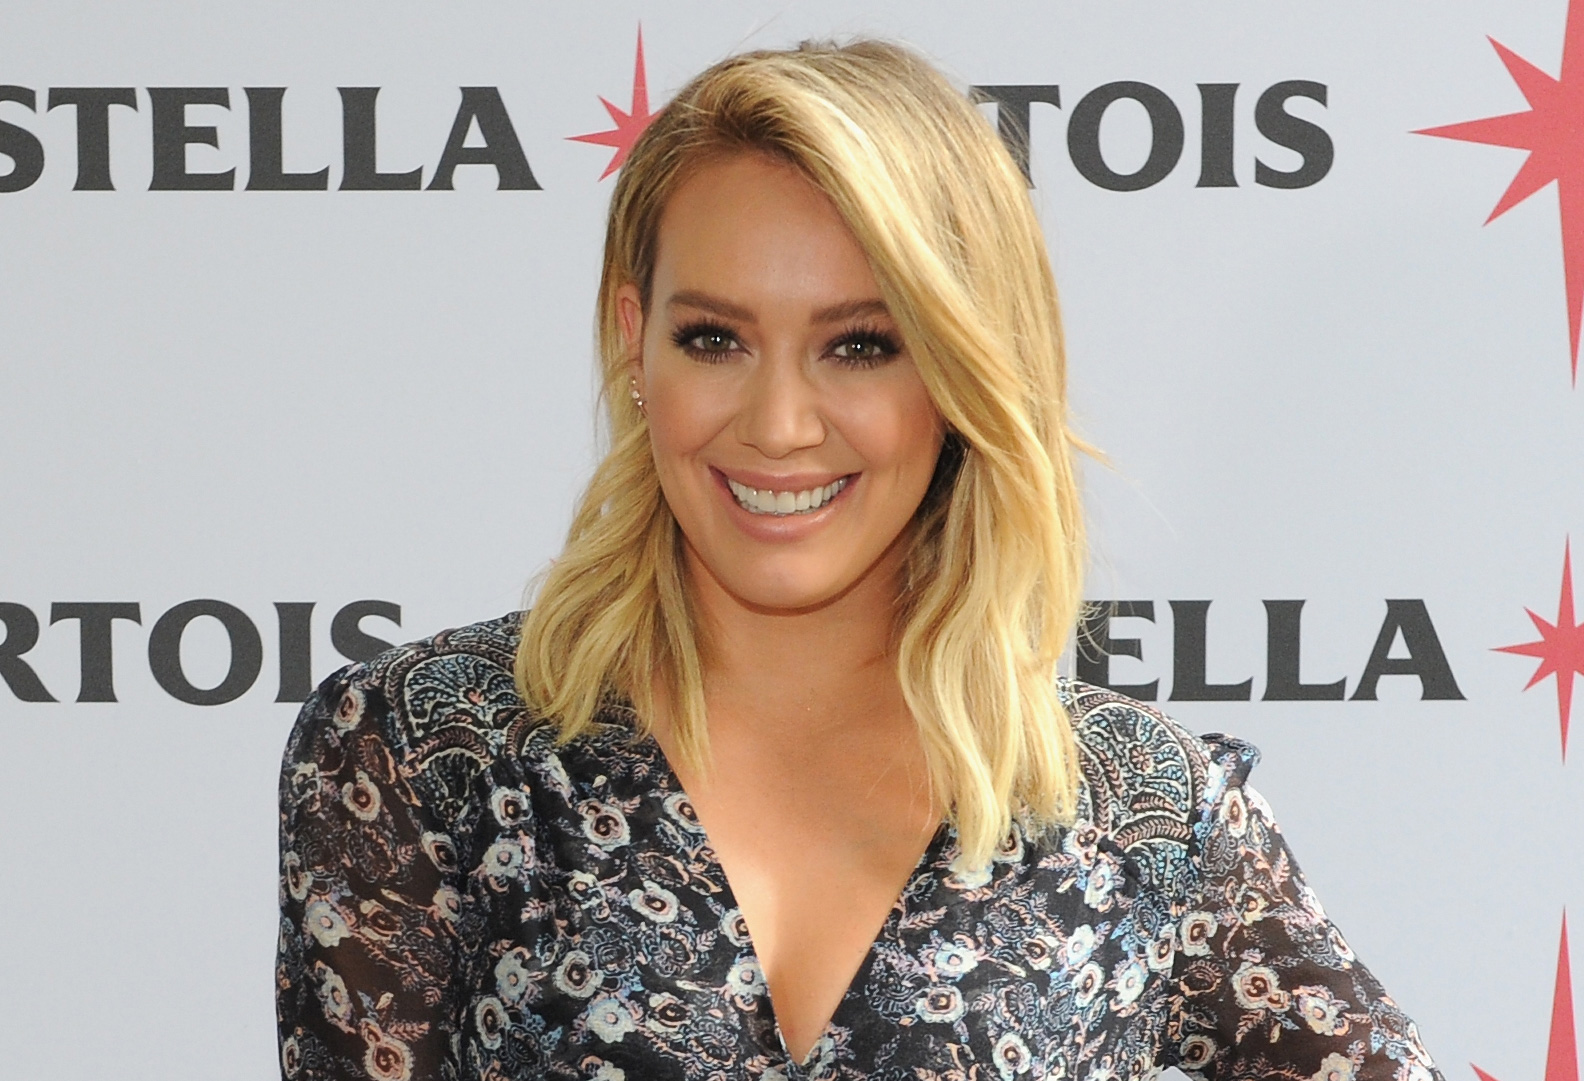 Hilary Duff is the coolest mom on the block in this chic city look